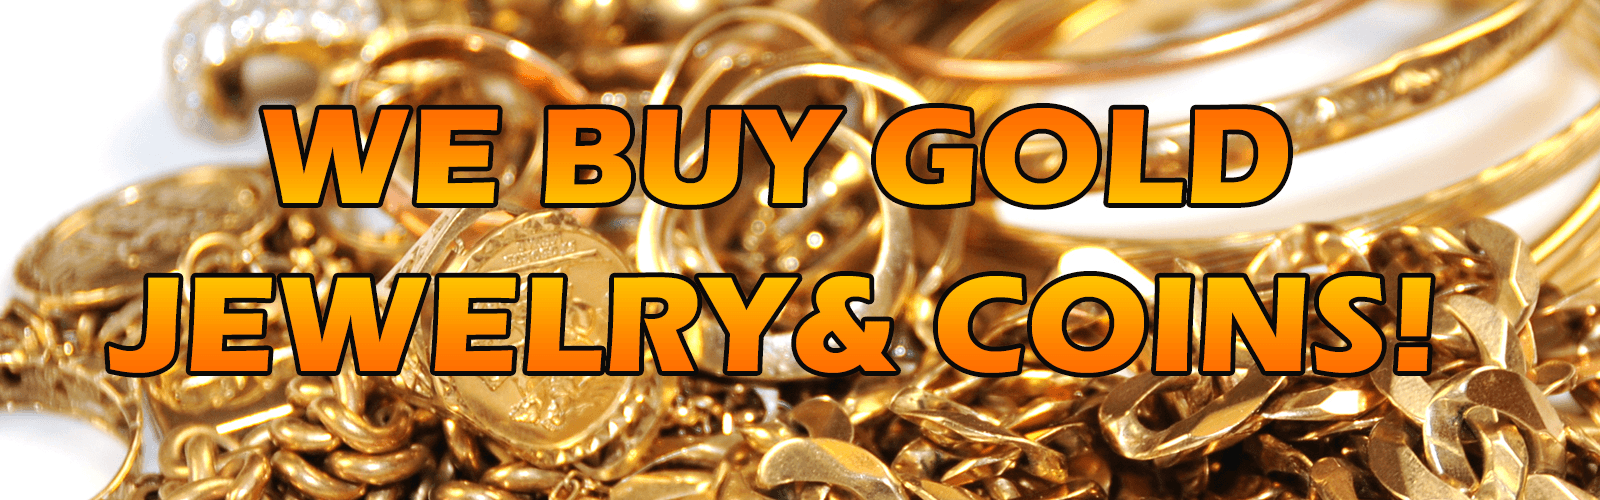 Cash for Gold Jewelry & Coins